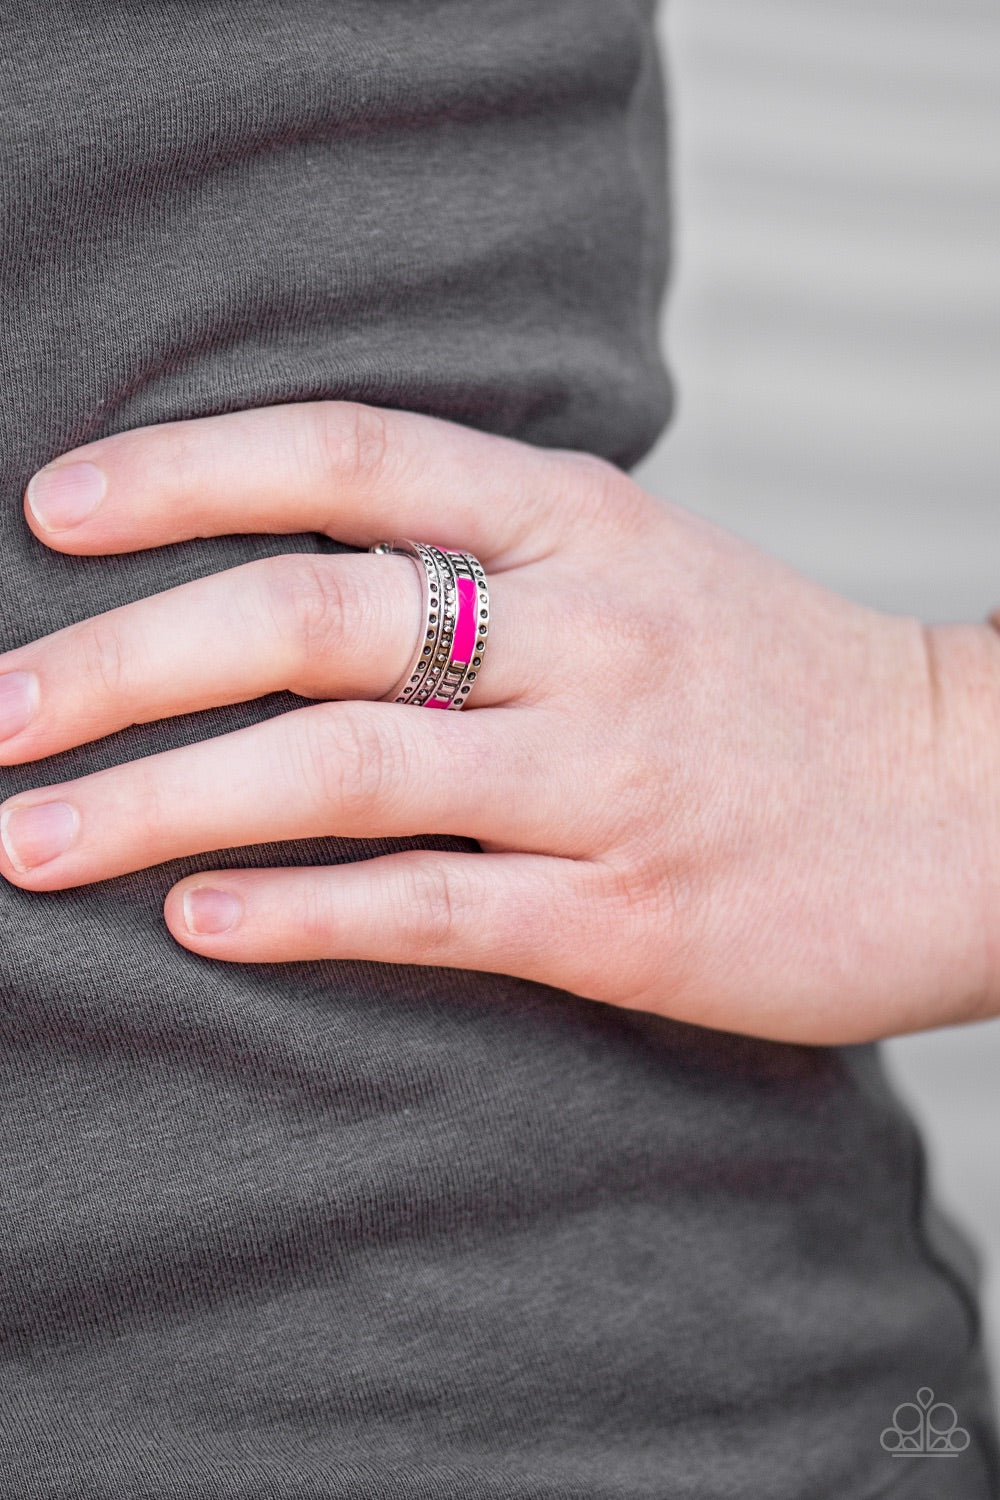 buy Super Summer - Pink Paparazzi Jewelry Ring onlineRingaffordable, black, easter, girls, paparazzi, pink, red, ring, silver, spring, stretchy, stretchy band, summer, summery, textured, unique